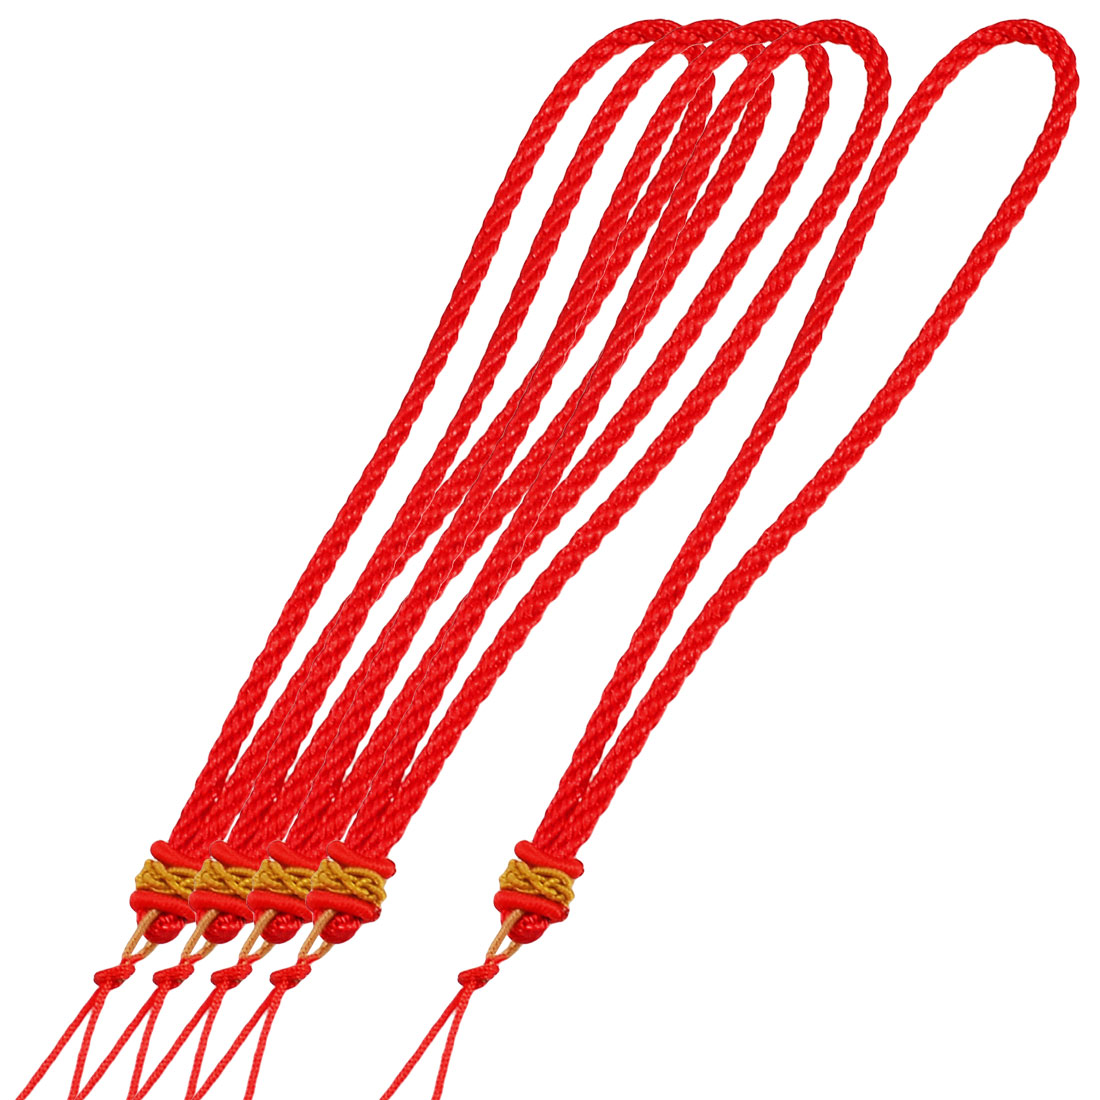 5 Pcs Red Nylon Adjustable Knot Twisted String Handmade Braided Hanging Lanyard